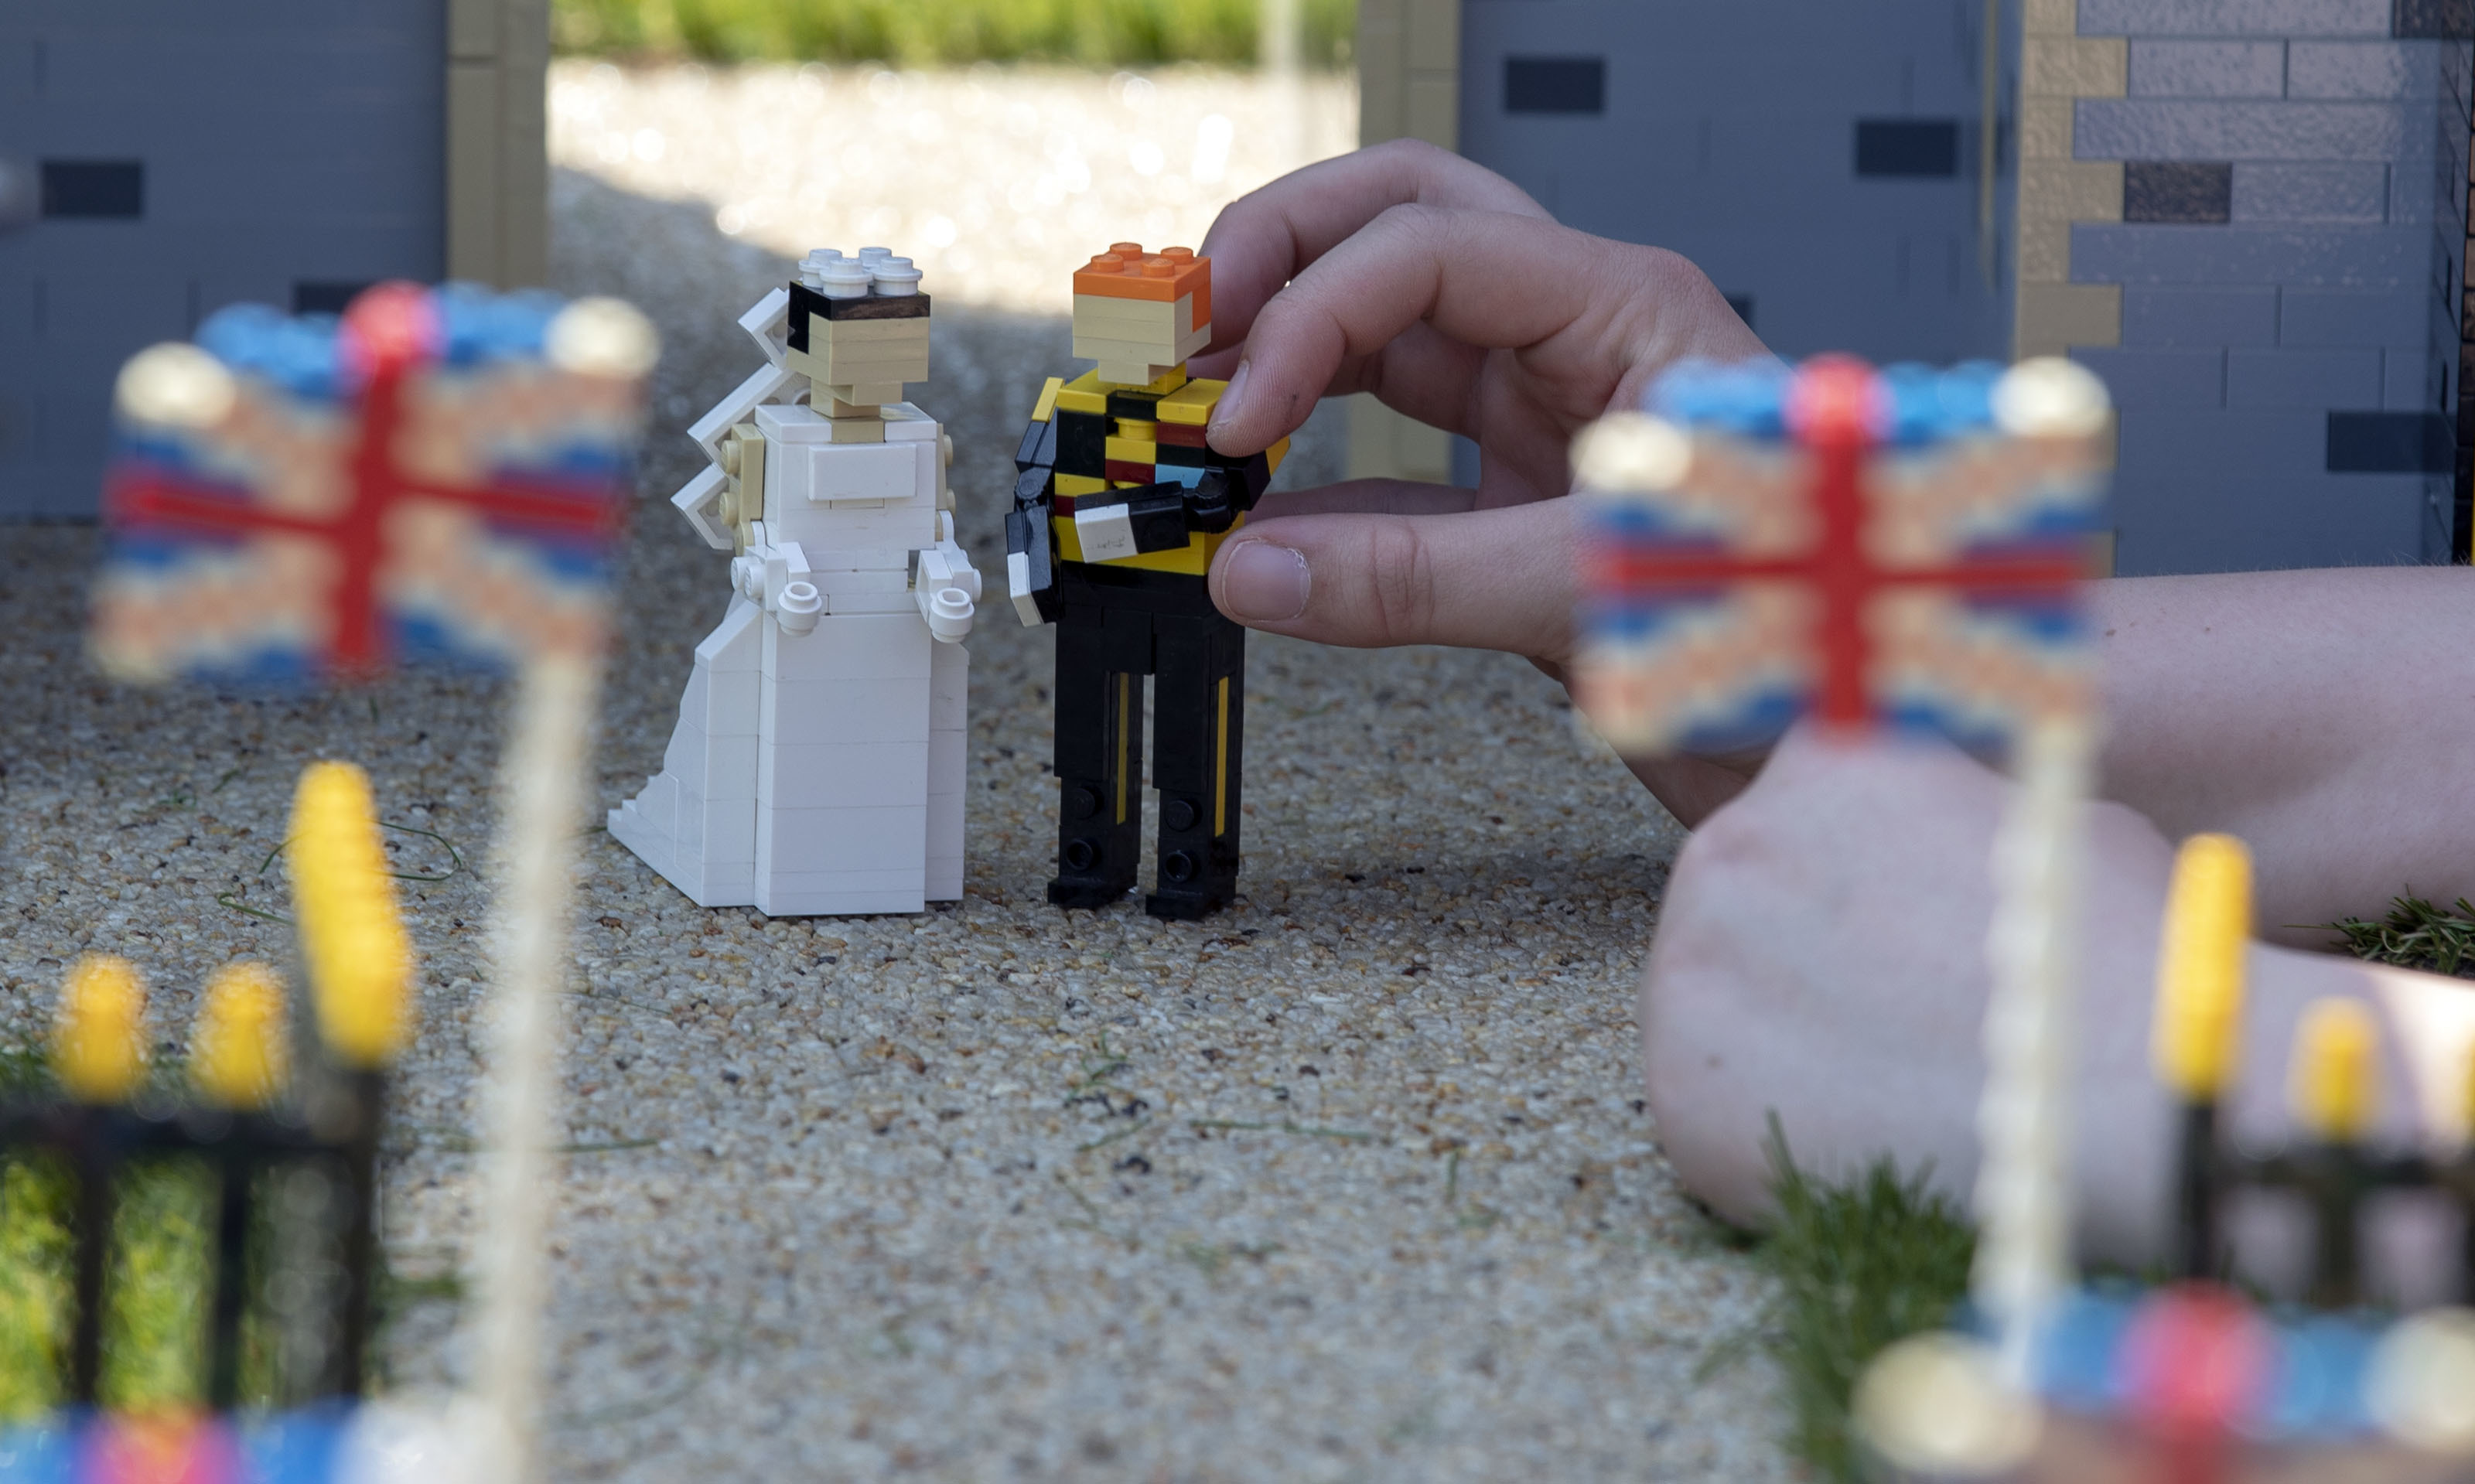 Legoland Windsor honours upcoming royal wedding with miniature castle Video